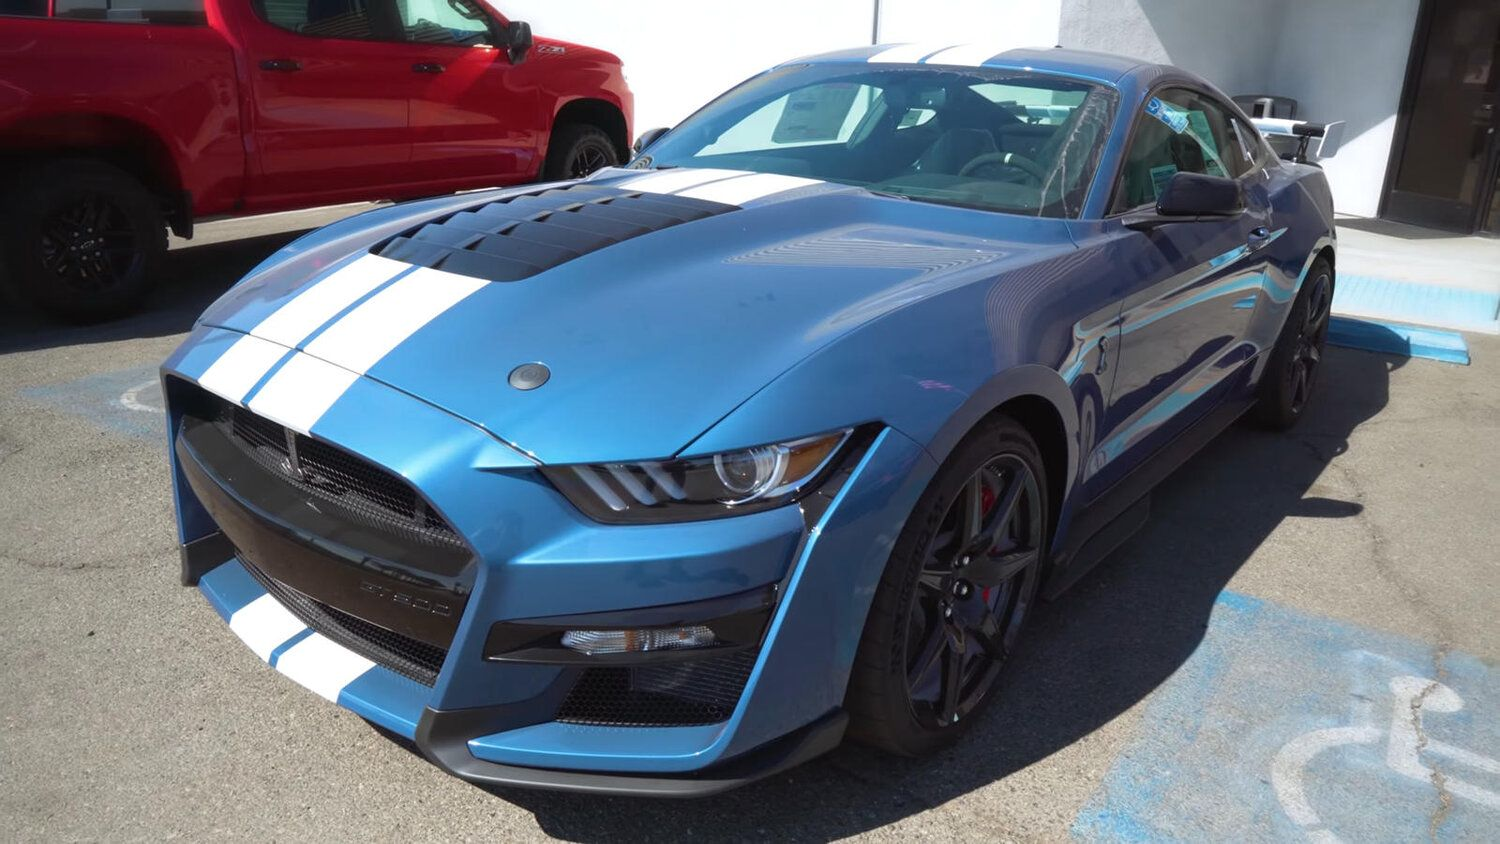 Taking Delivery Of 107k 2020 Ford Mustang Shelby Gt500 Stangbangers Mustang Shelby Shelby Mustang Gt500 Ford Mustang Shelby